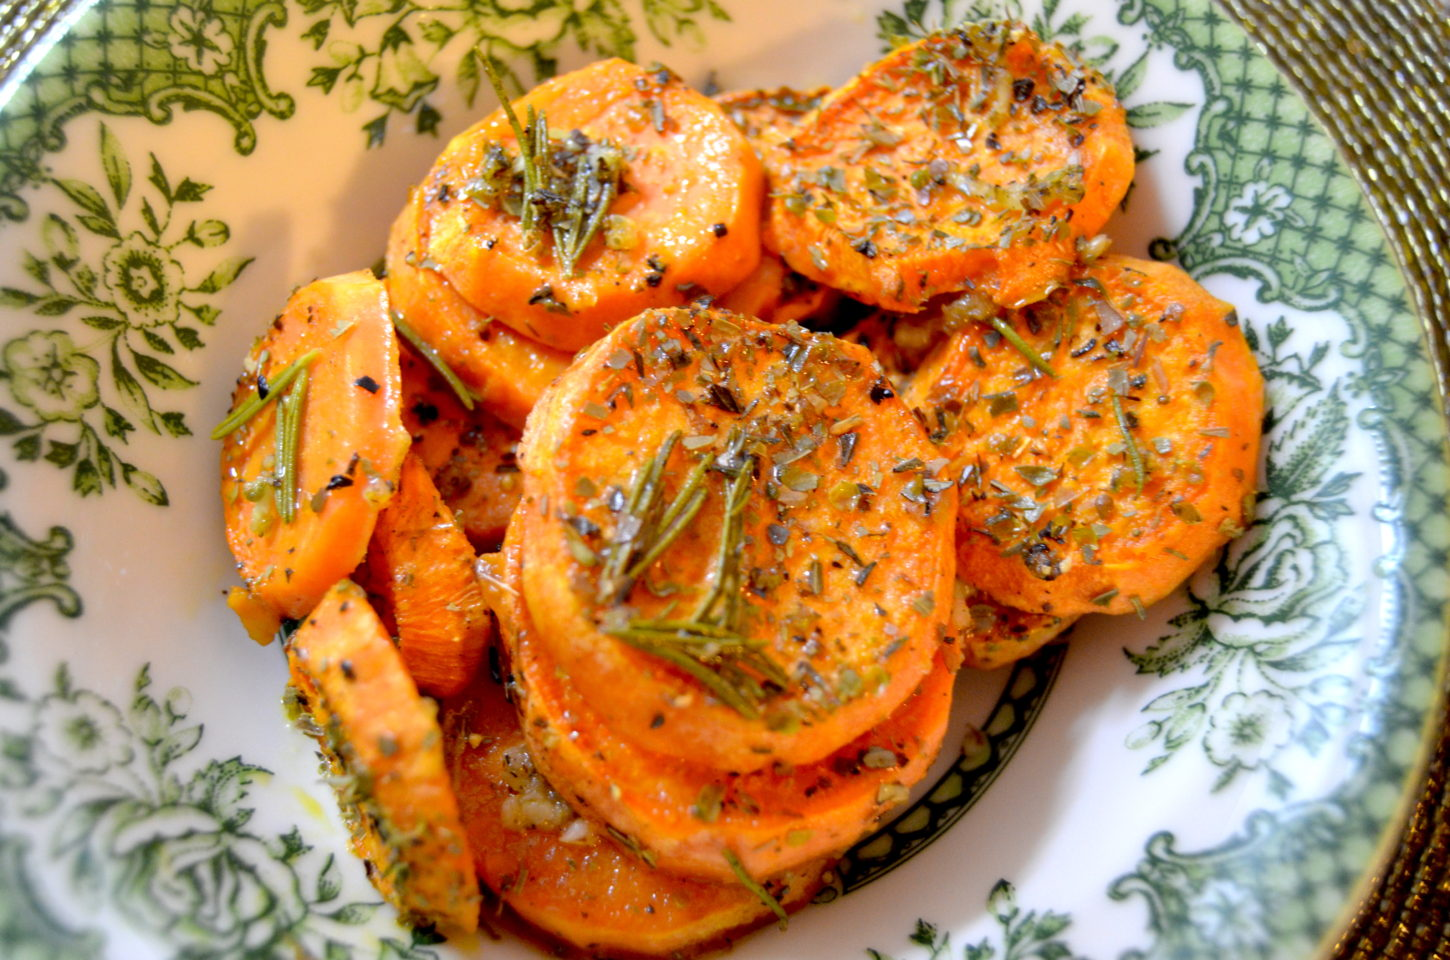 lifestyle redesign  - 685f45 9c9892fd6c874b57864723b63e7ba501mv2 d 4928 3264 s 4 2 - Rosemary Sweet Potatoes Recipe: Simple & Tasty